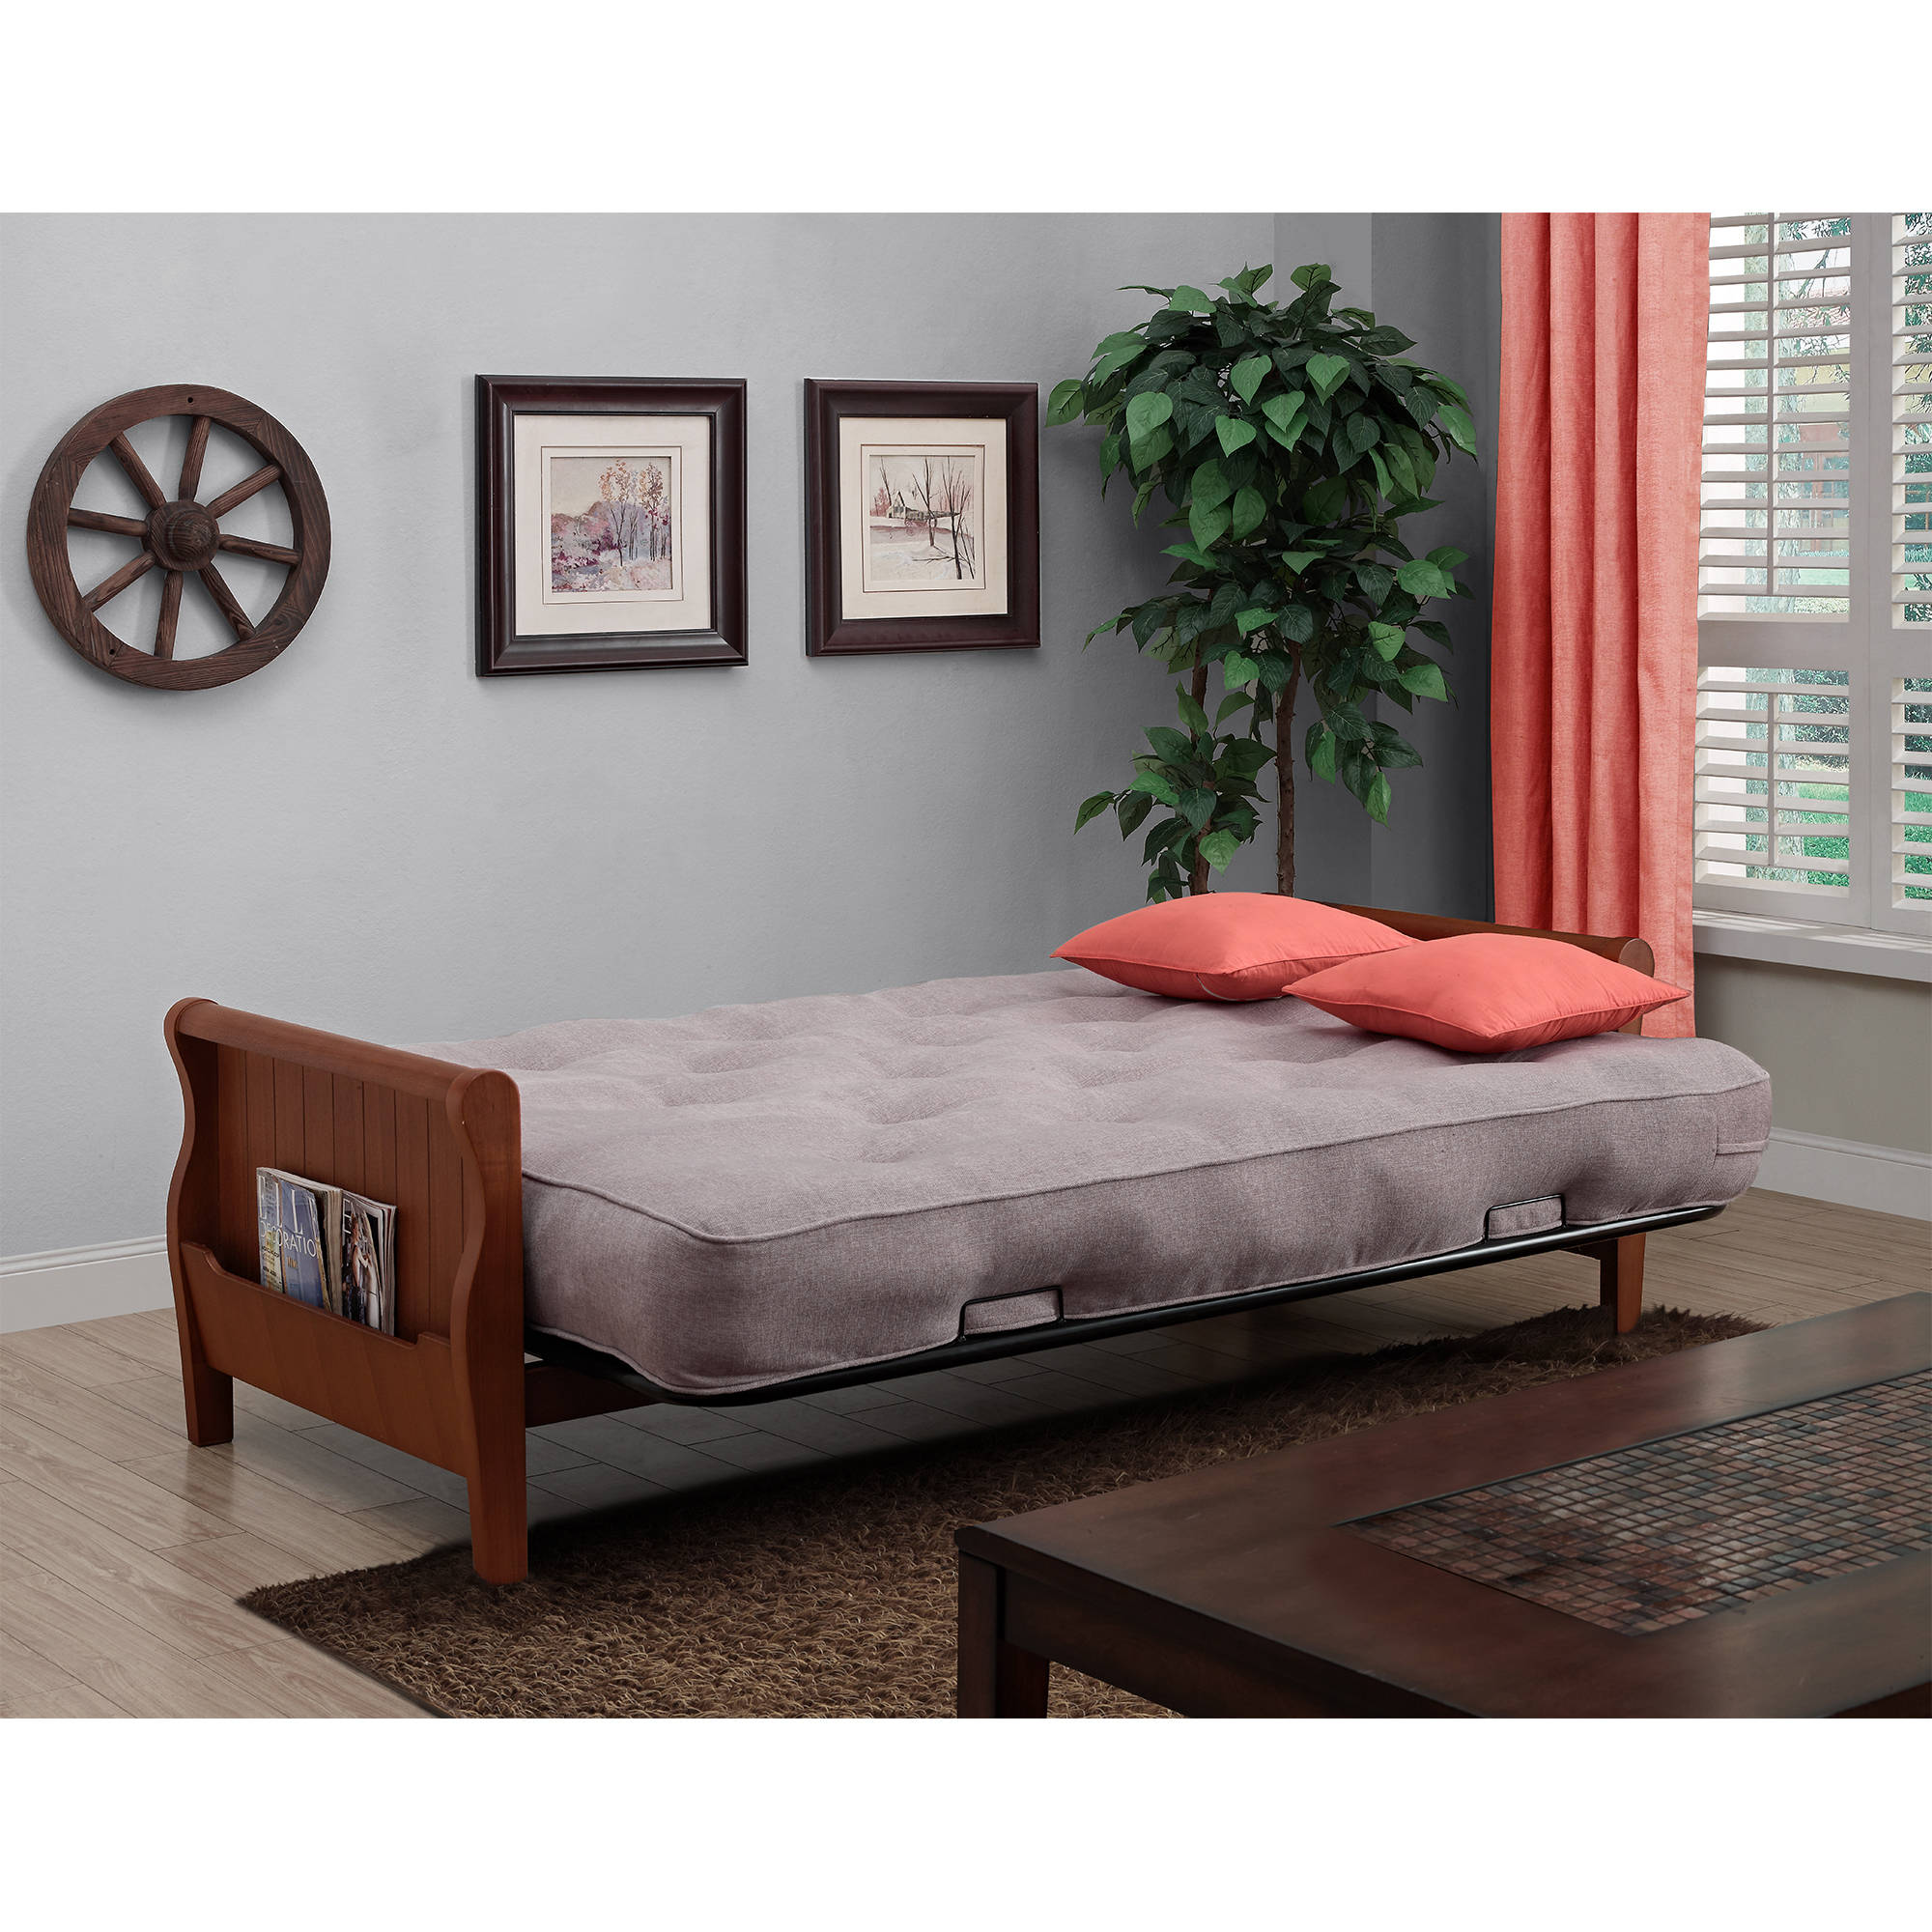 sofa mart indianapolis small sectional modern convertible sleeper wood arm futon bed 8 inch coil